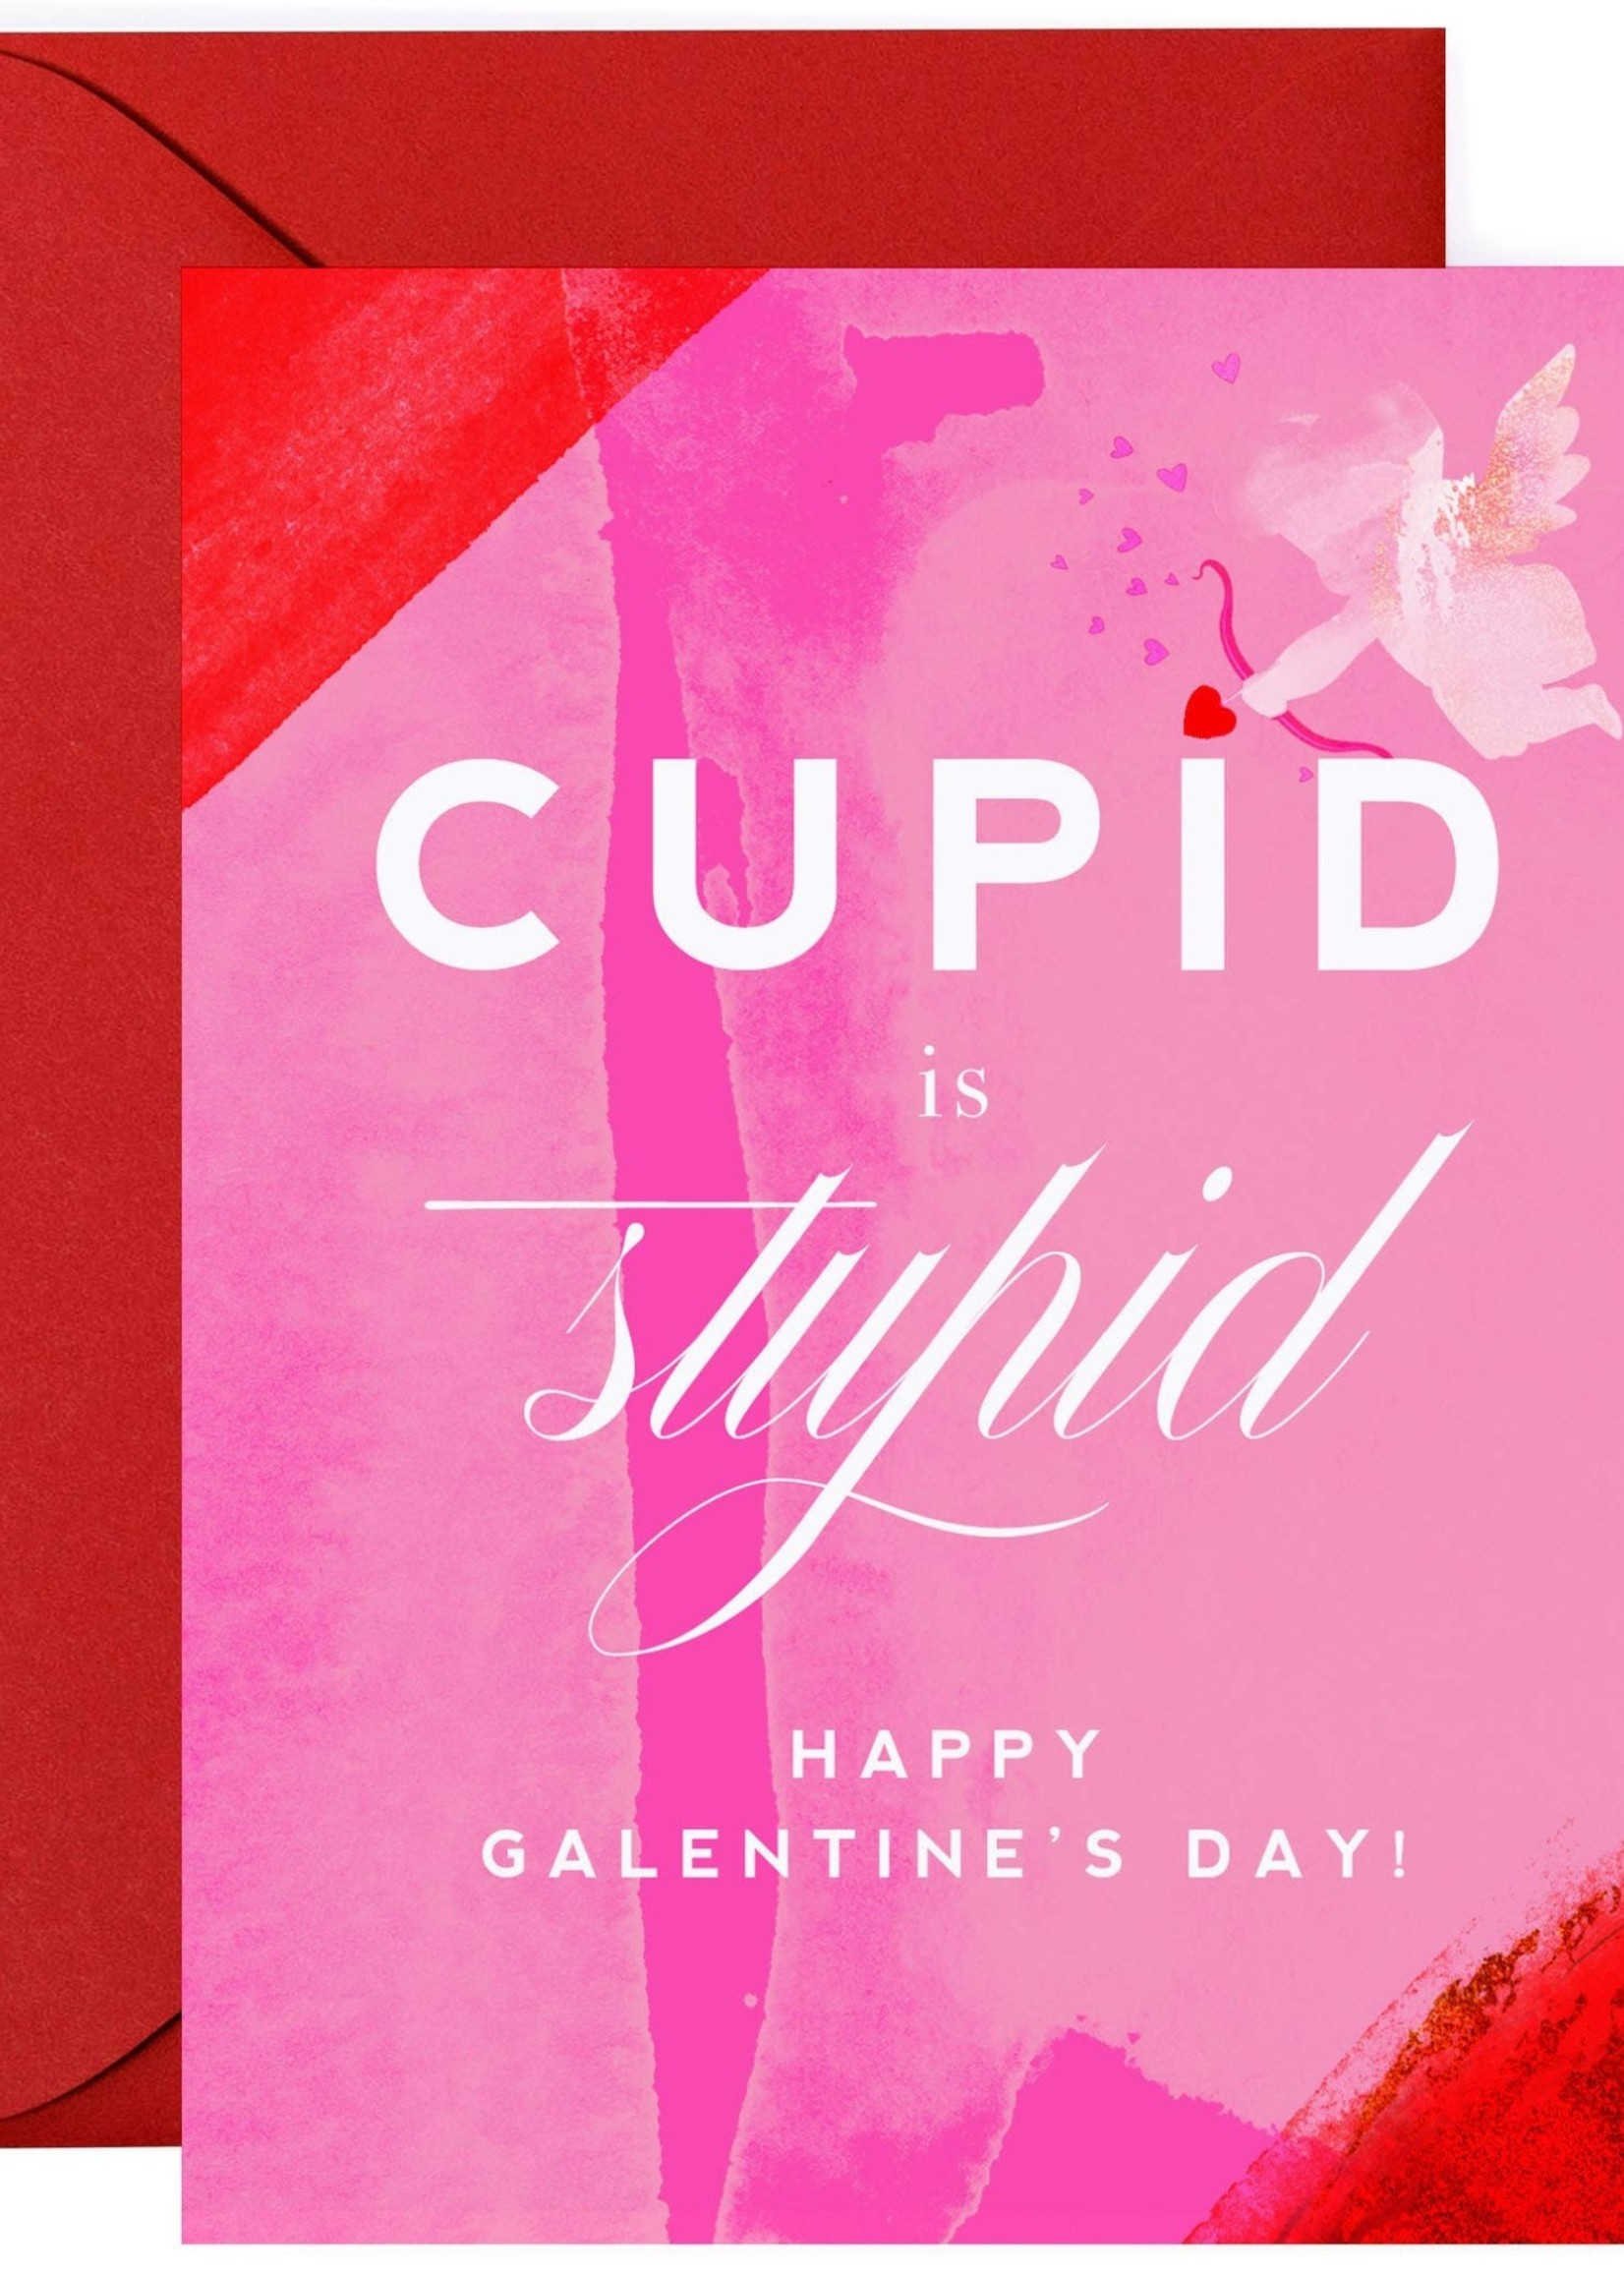 Cupid is Stupid - Funny Galentine's Day Card - Valentine's